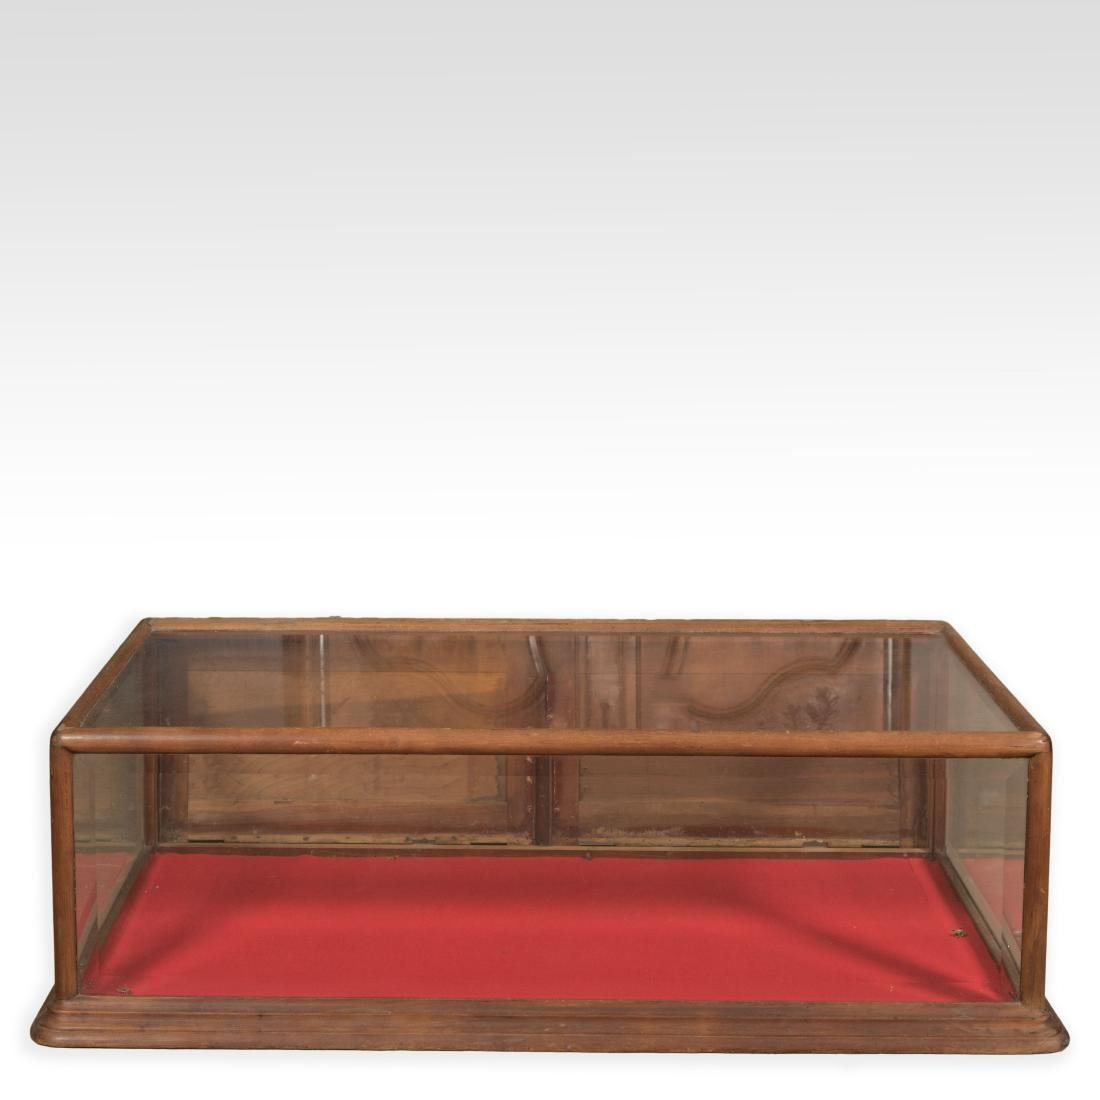 Mahogany Beveled Glass Display Case